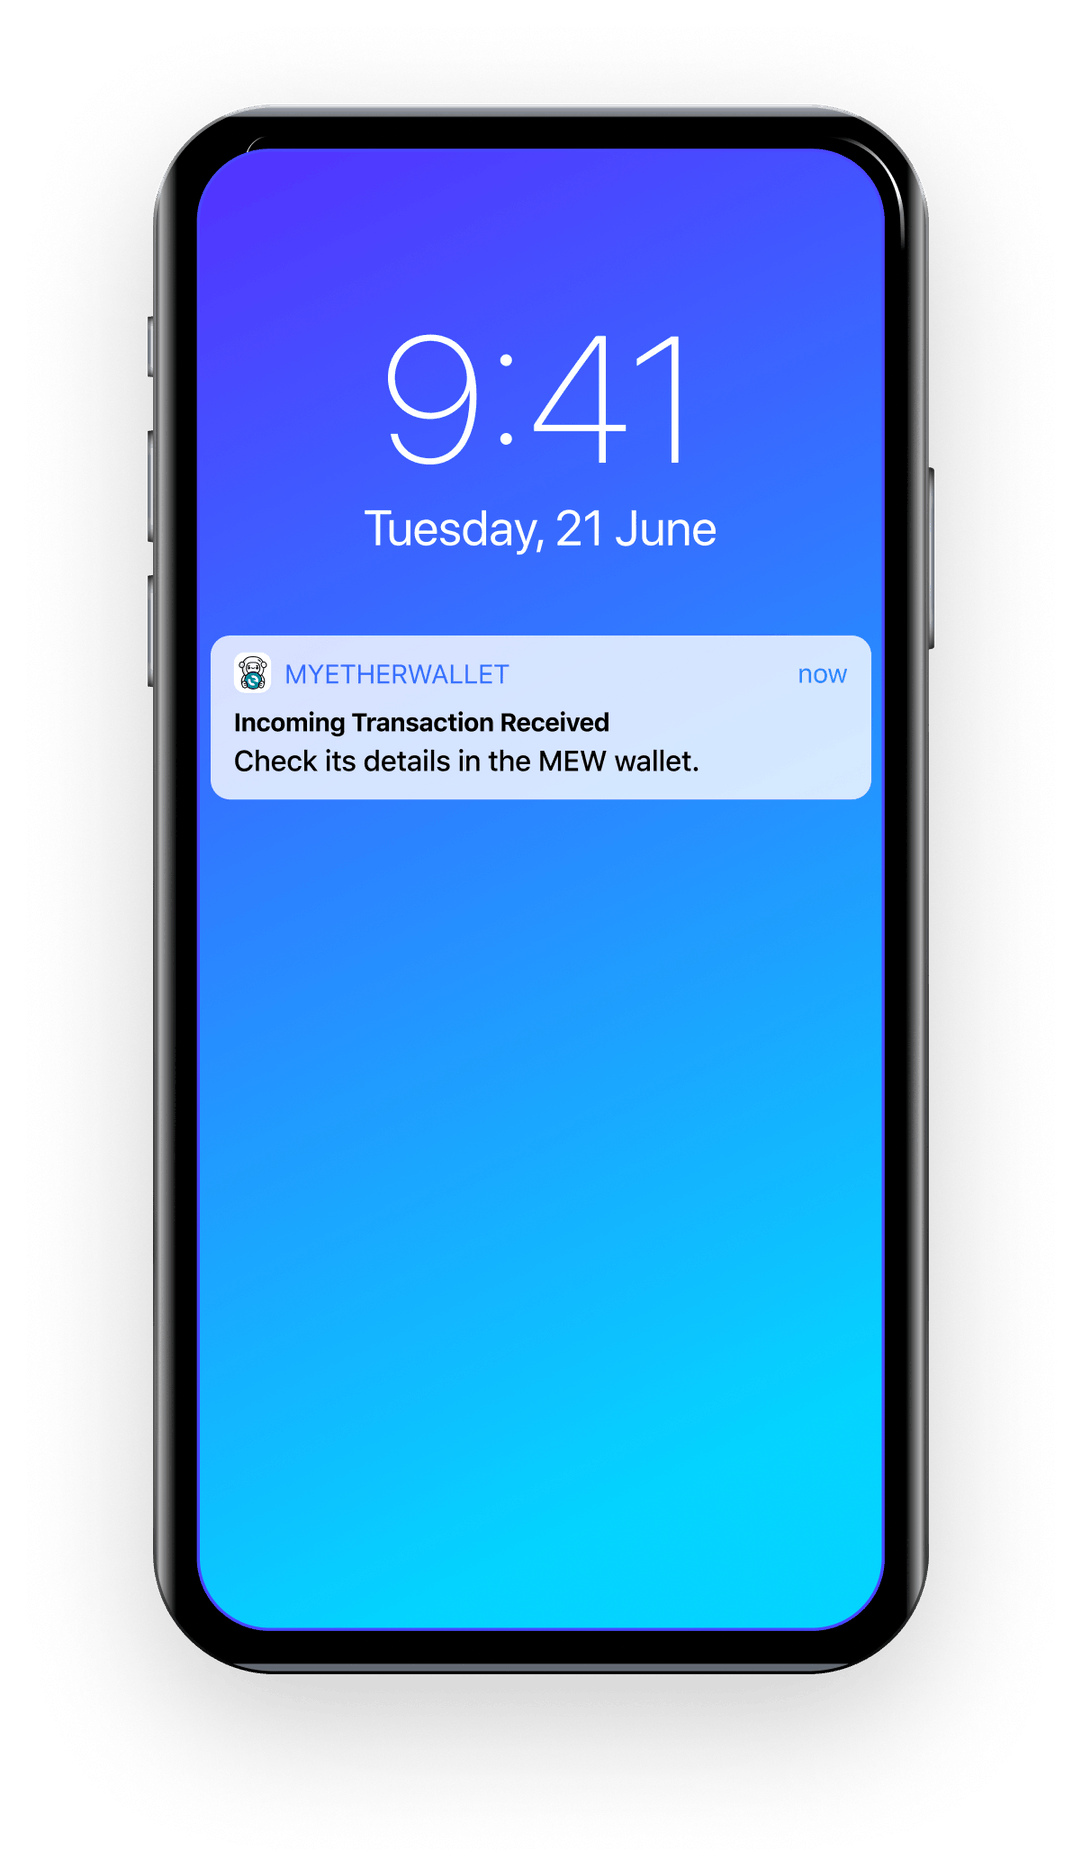 With Notify